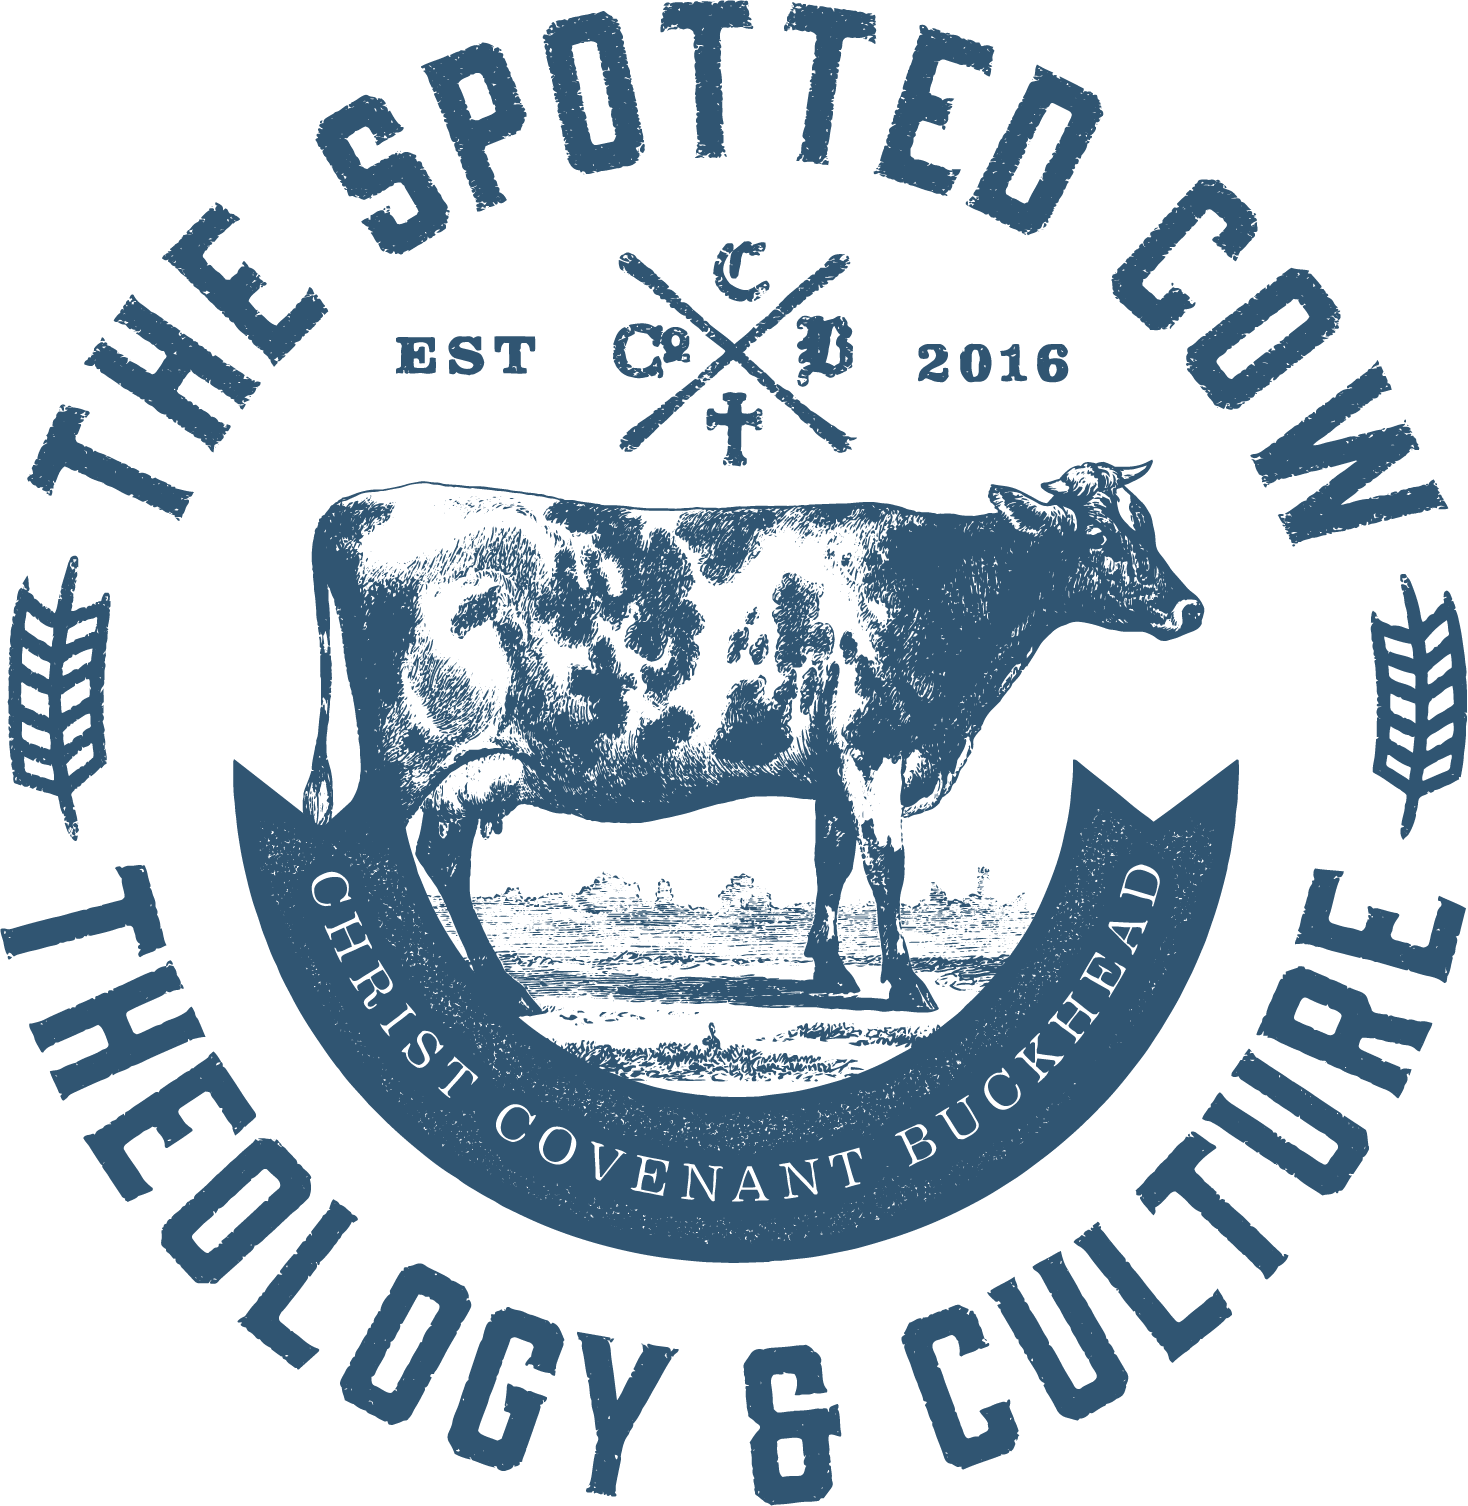 Thespottedcow copy